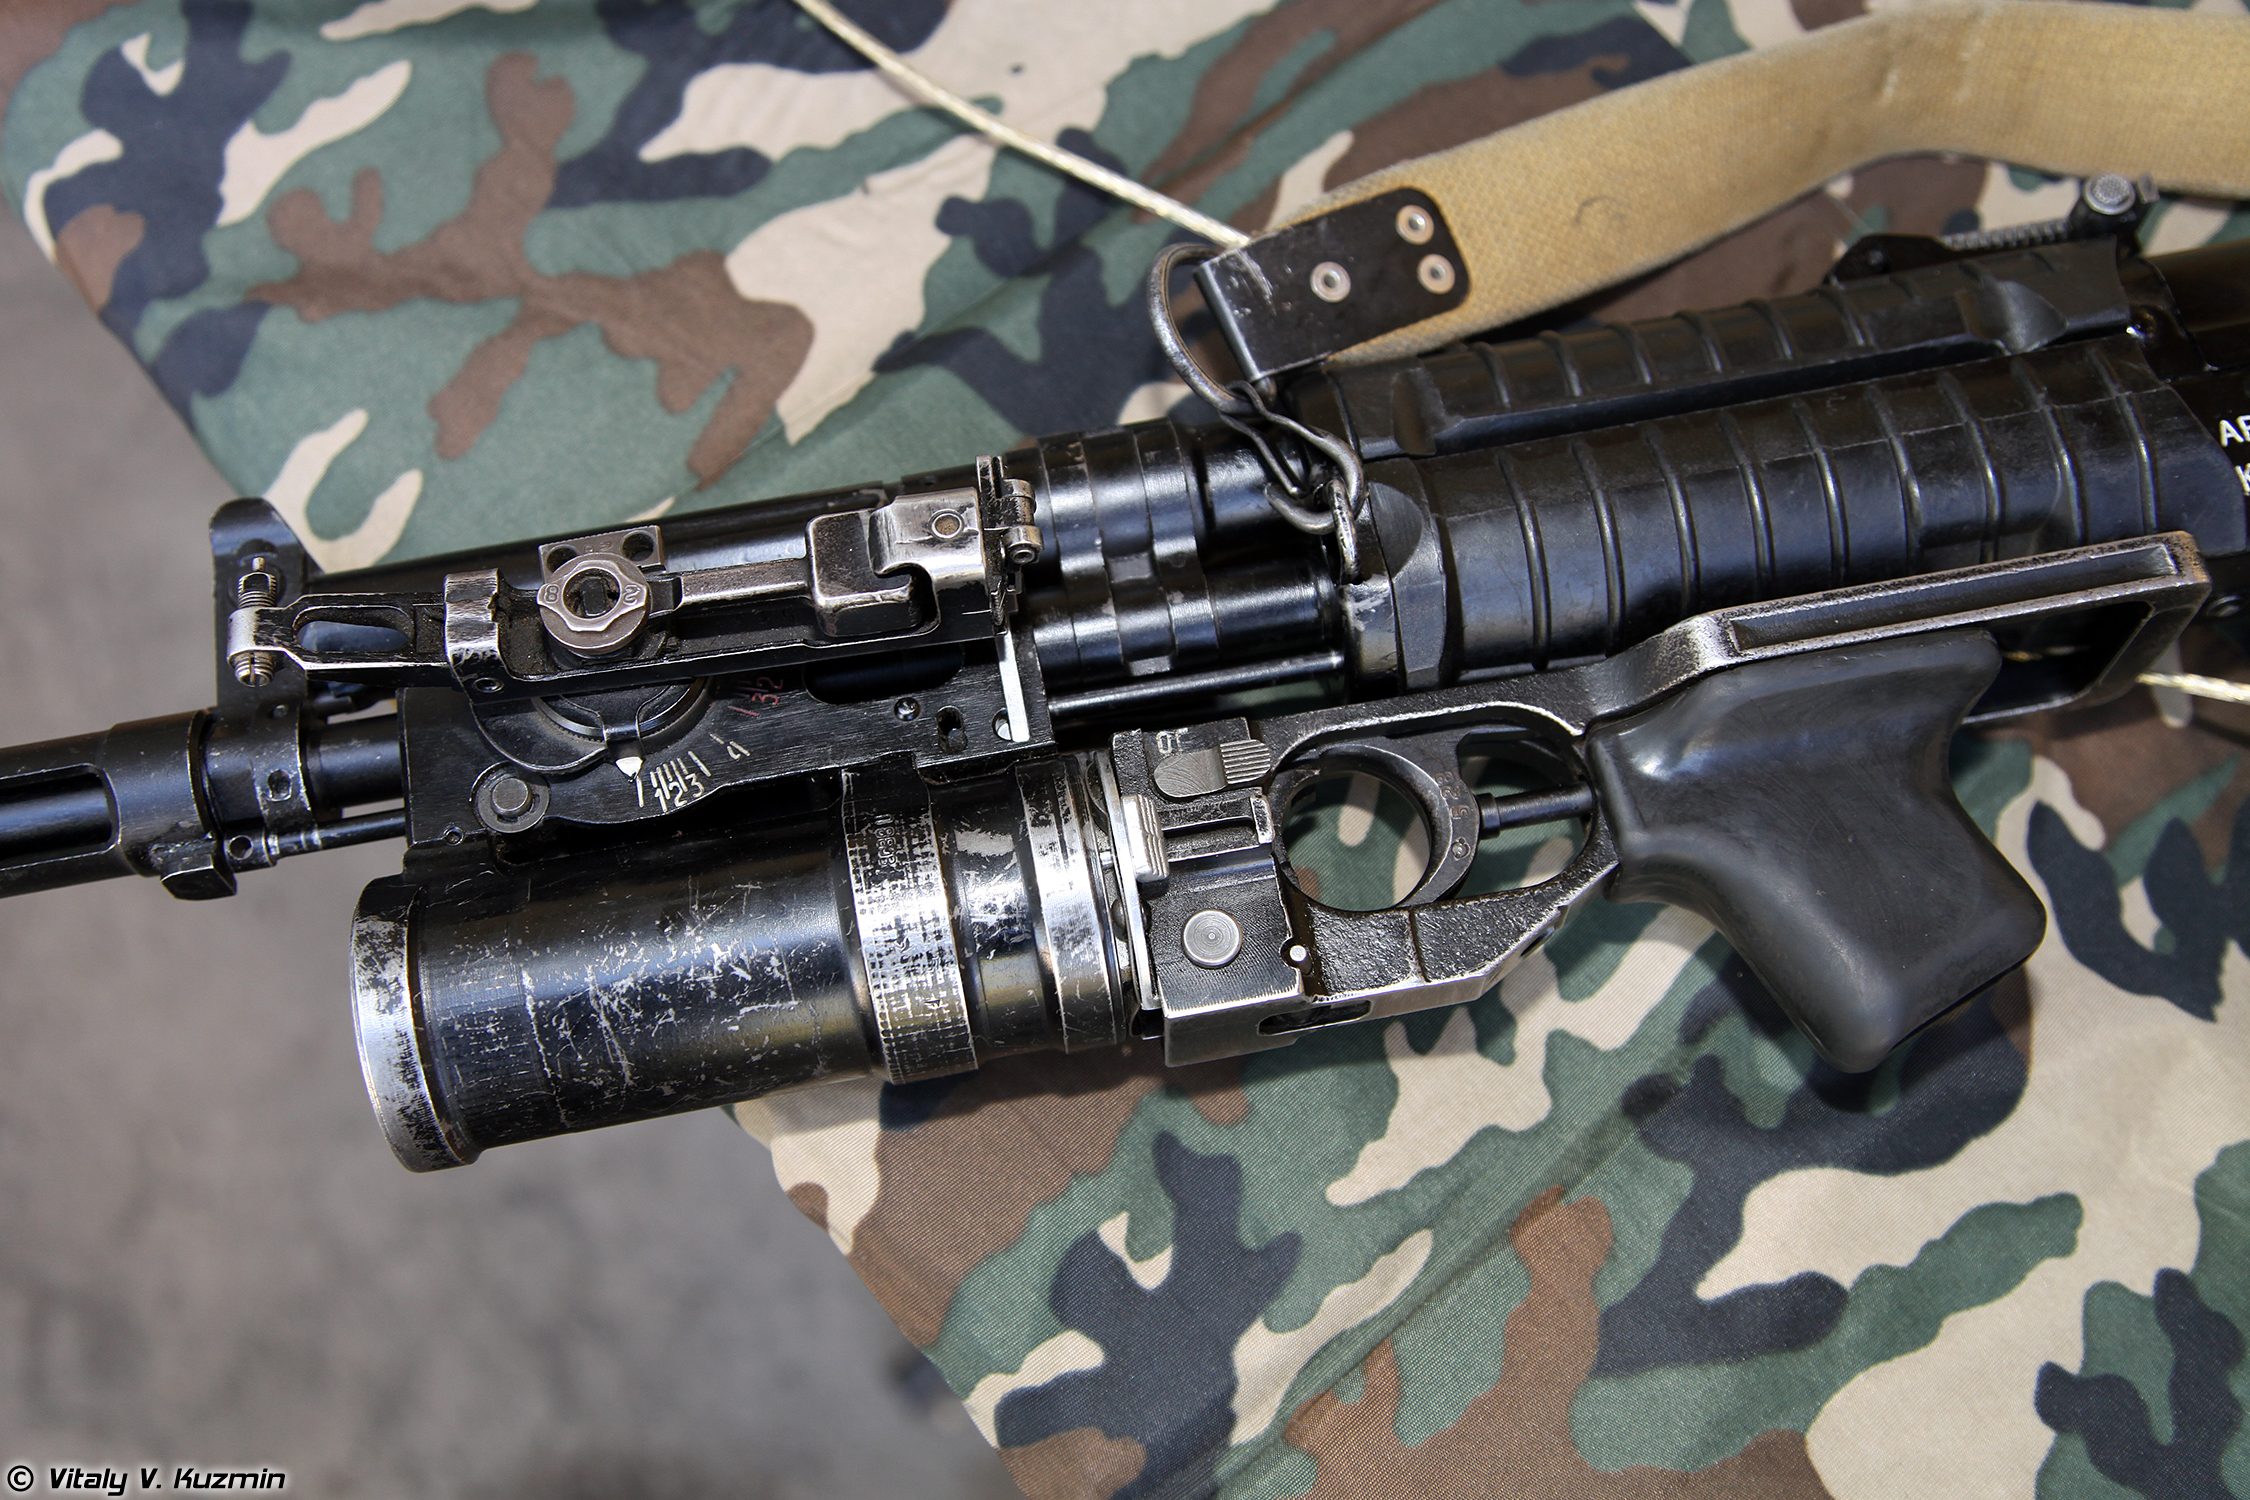 File:AEK-971 with GP-25 04.jpg